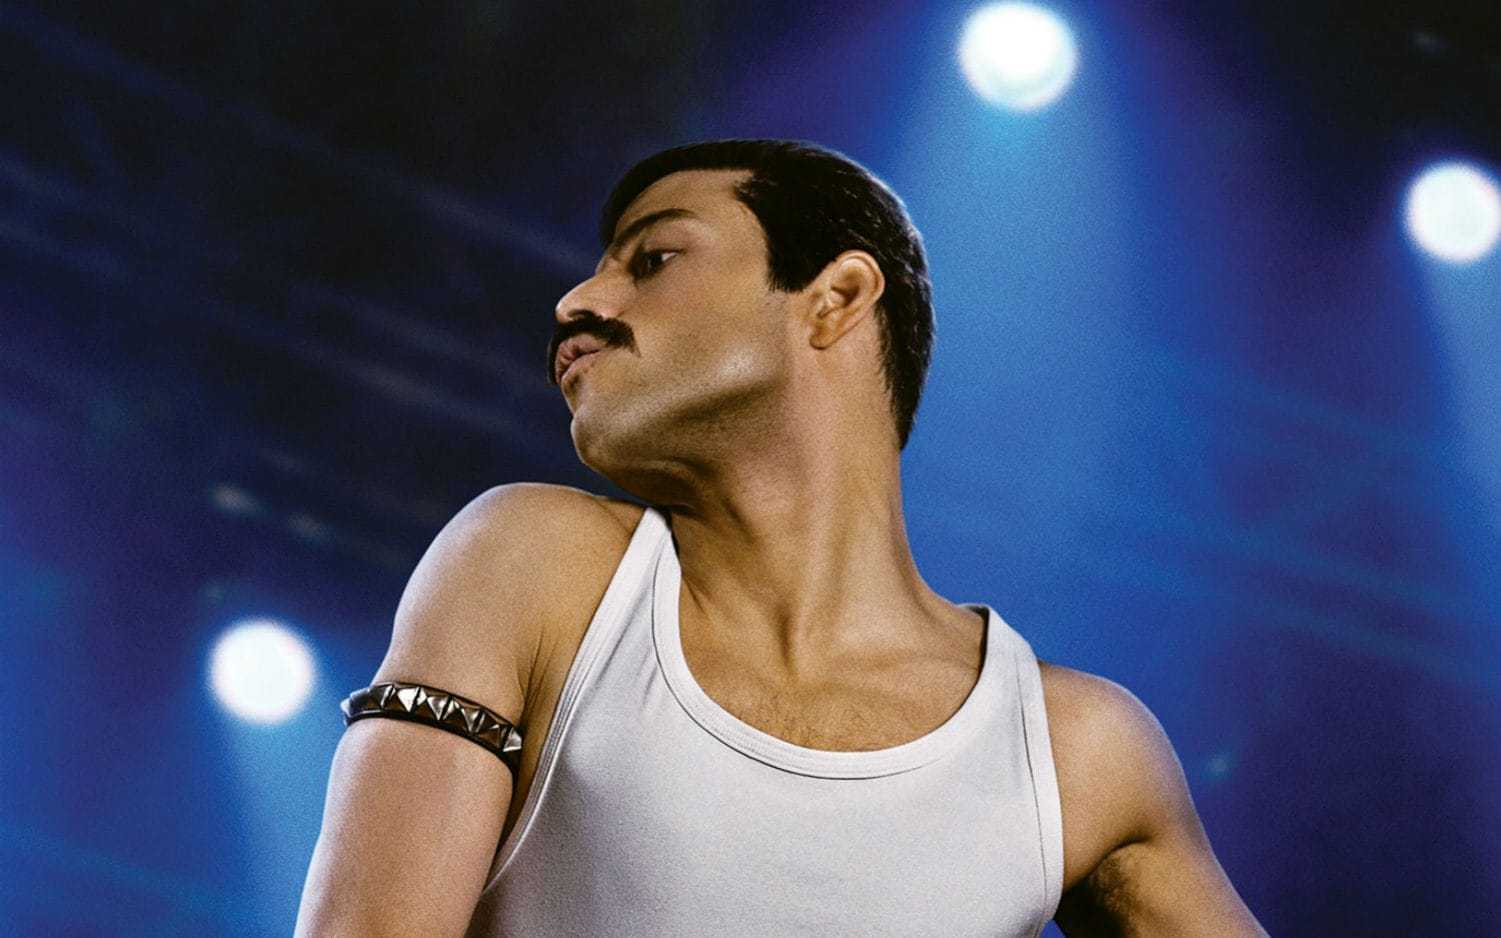 Bryan Singer Fired From Queen Biopic 'Bohemian Rhapsody' | Bryan Singer